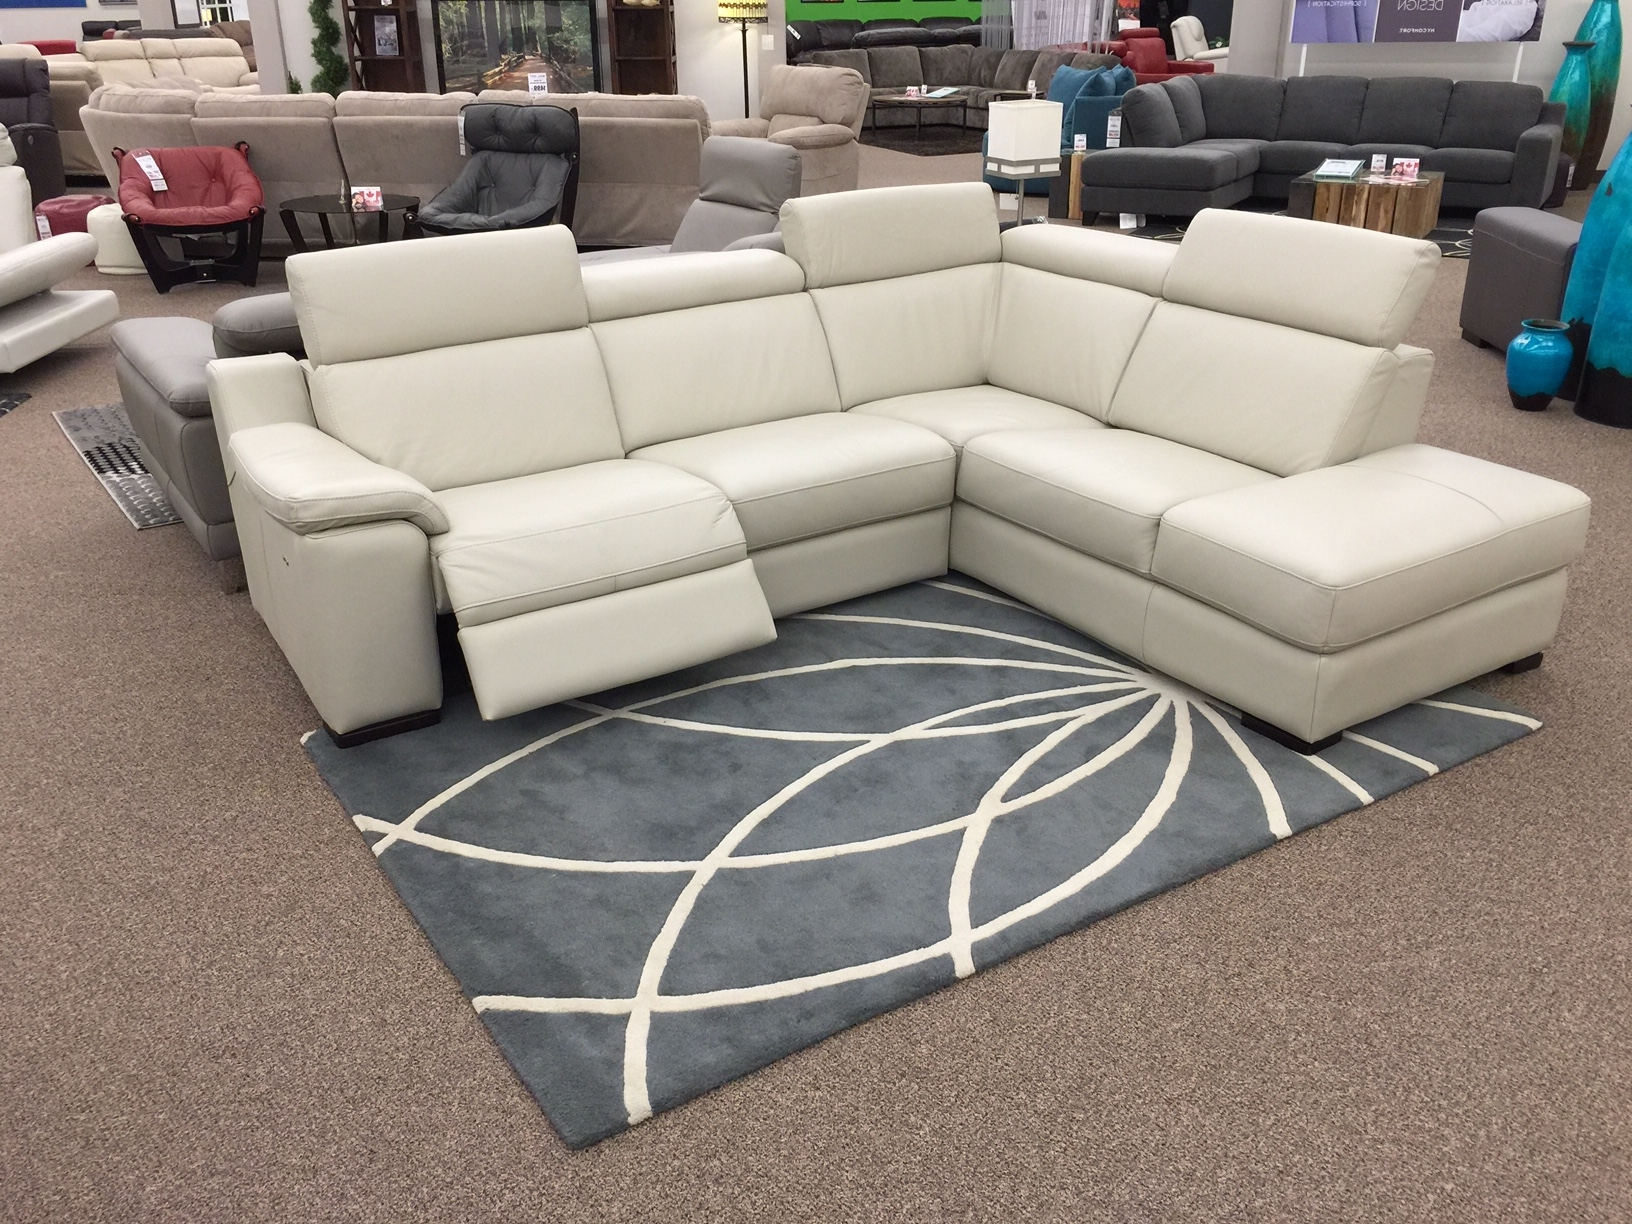 [%the Ashlynn Sectional Just Arrived At Sofa Land! This 100% Leather Pertaining To Favorite Sectional Sofas In Stock|sectional Sofas In Stock Regarding Latest The Ashlynn Sectional Just Arrived At Sofa Land! This 100% Leather|widely Used Sectional Sofas In Stock In The Ashlynn Sectional Just Arrived At Sofa Land! This 100% Leather|most Up To Date The Ashlynn Sectional Just Arrived At Sofa Land! This 100% Leather Intended For Sectional Sofas In Stock%] (View 8 of 20)